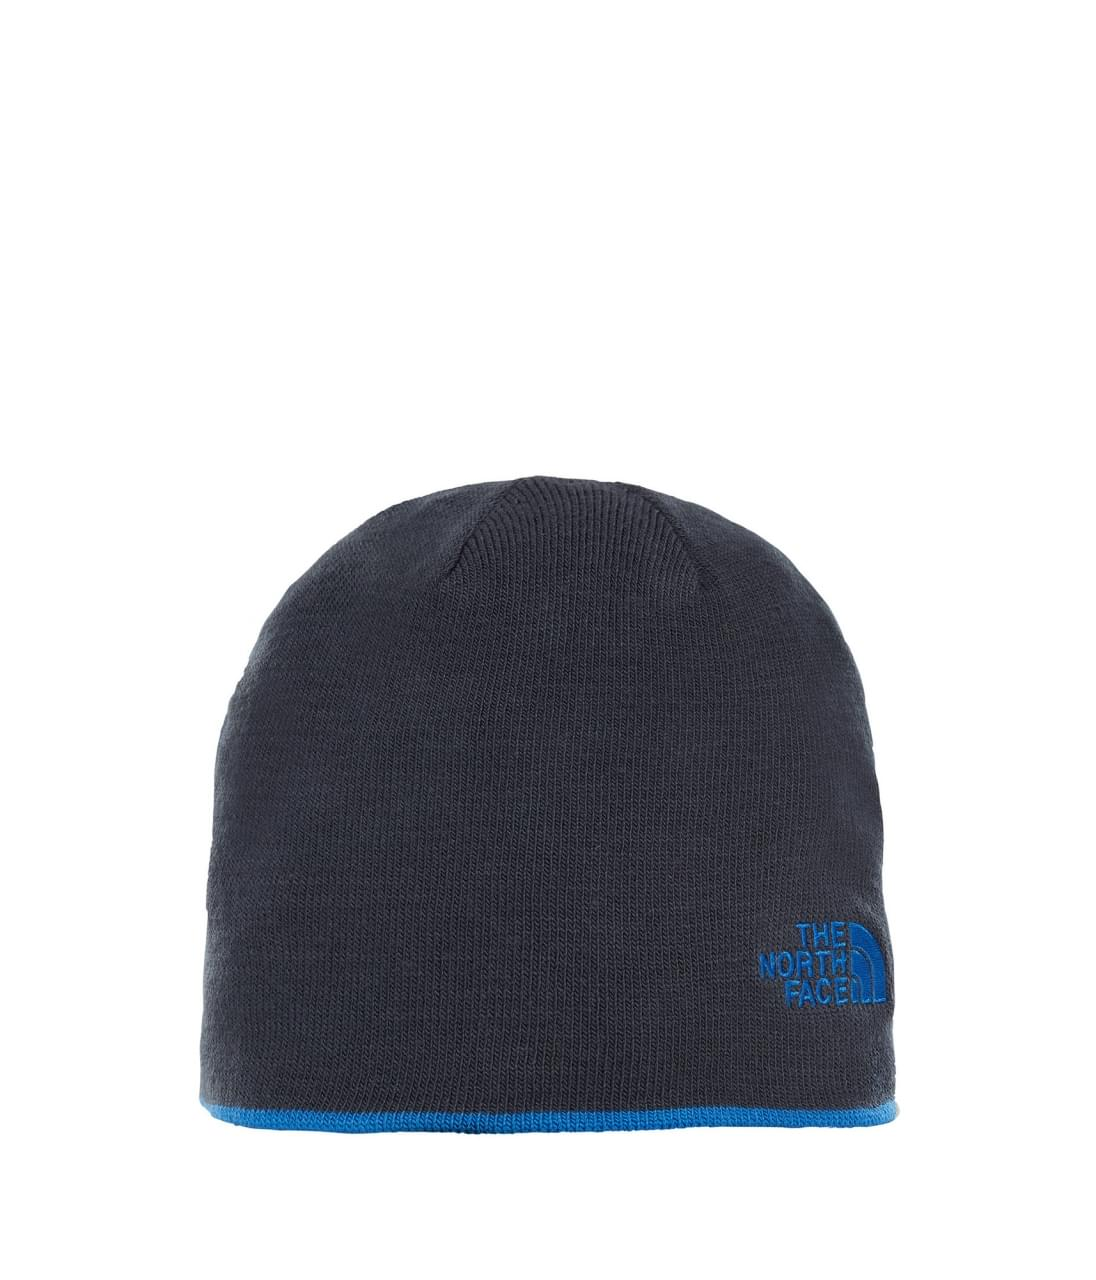 The North Face Reversible Tnf Banner Beanie Muts